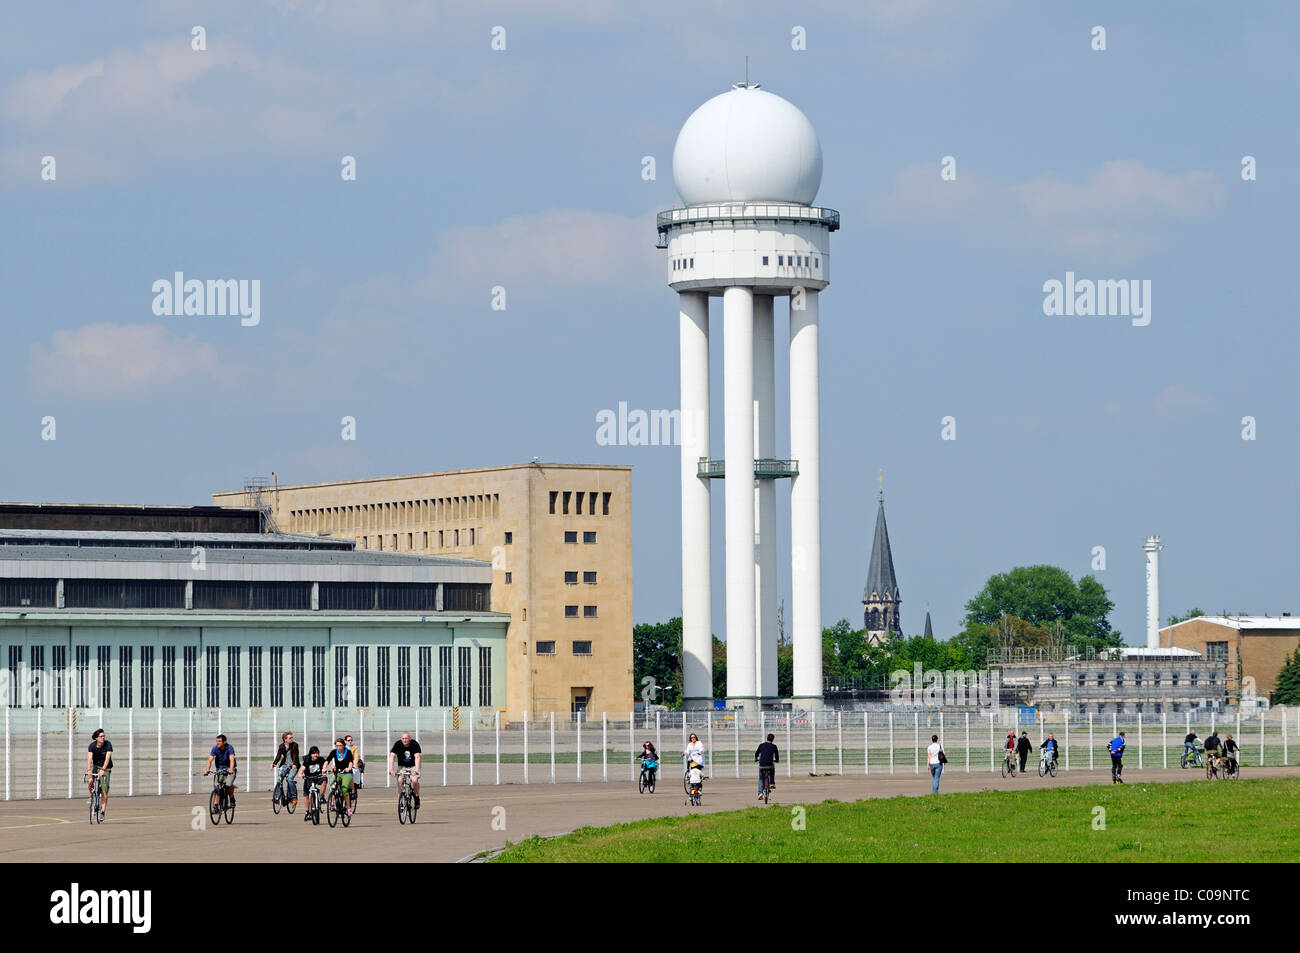 Radar tower of Tempelhof Airport, handed over to the public in May 2010, Tempelhofer Feld between the Tempelhof, - Stock Image